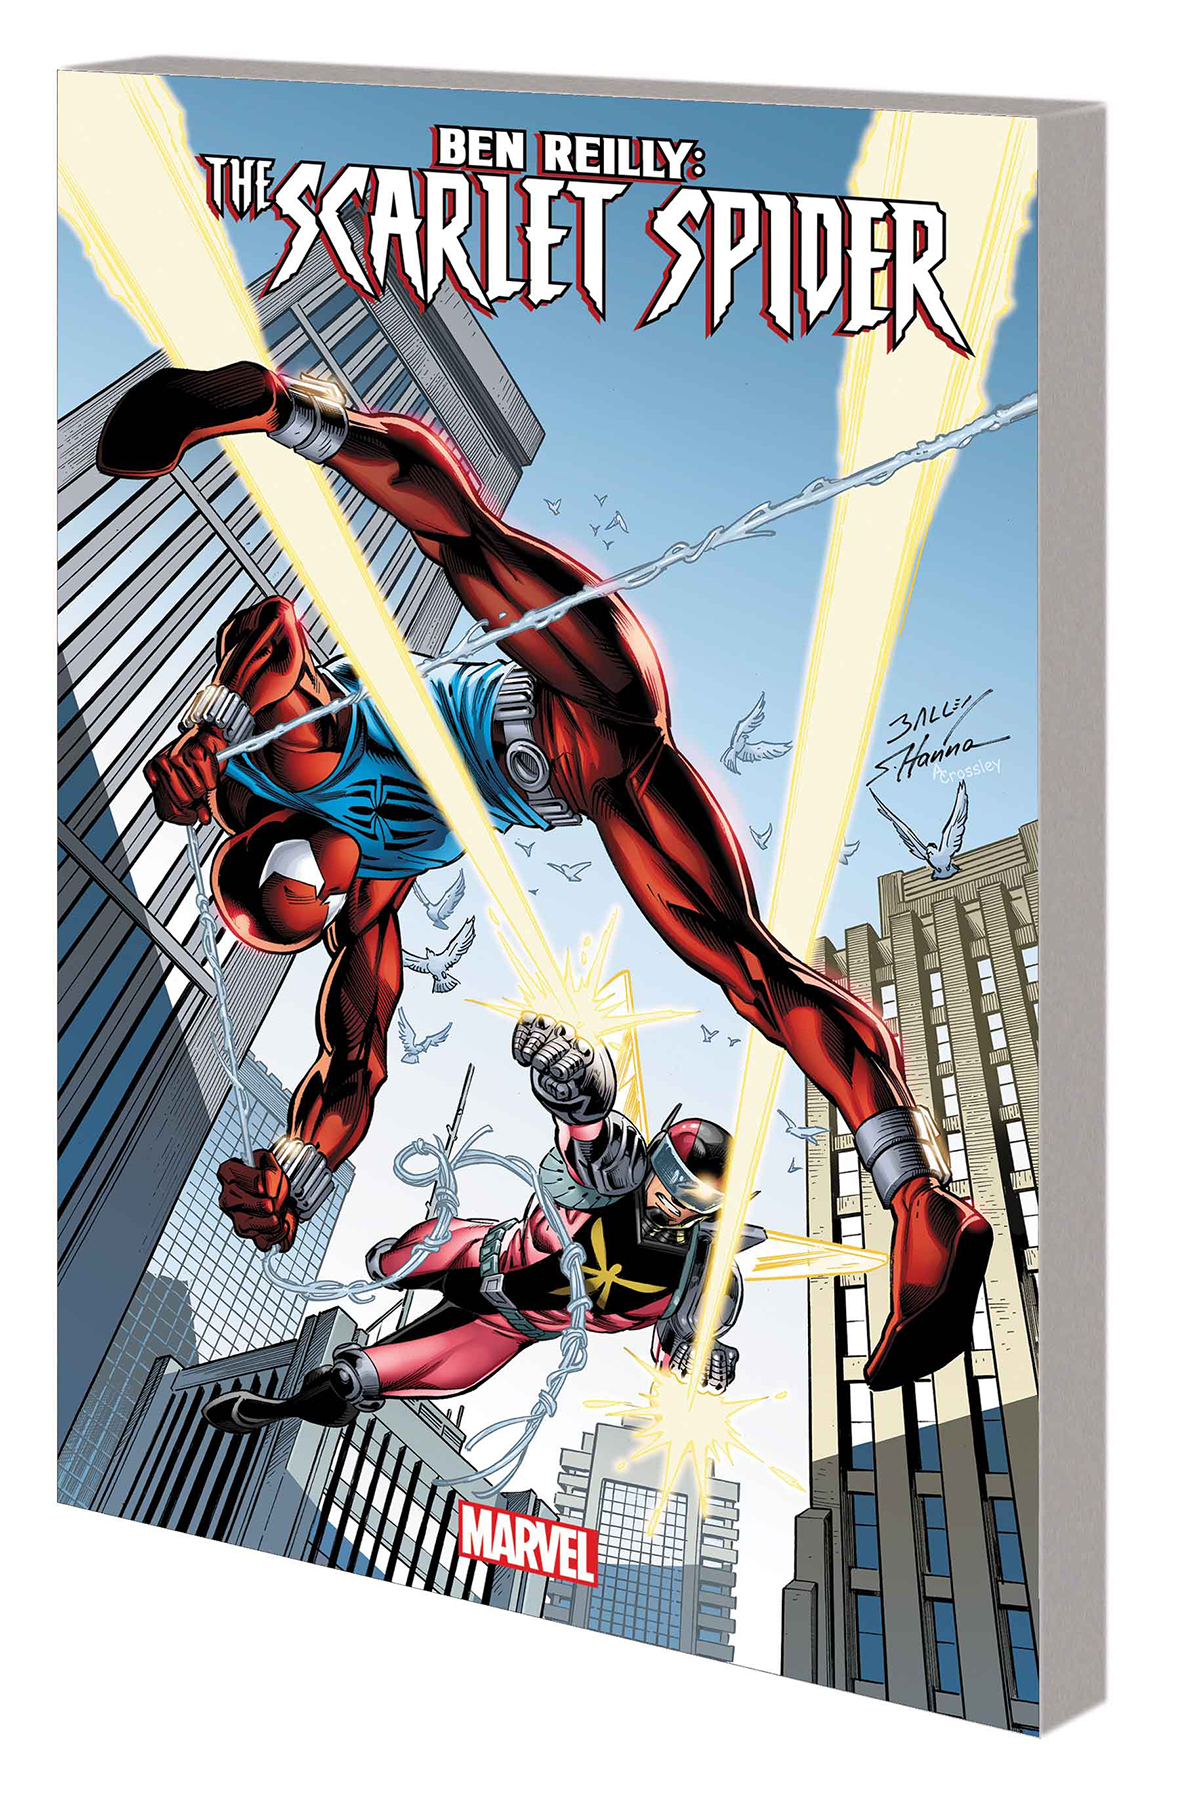 BEN REILLY SCARLET SPIDER TP VOL 02 DEATHS STING